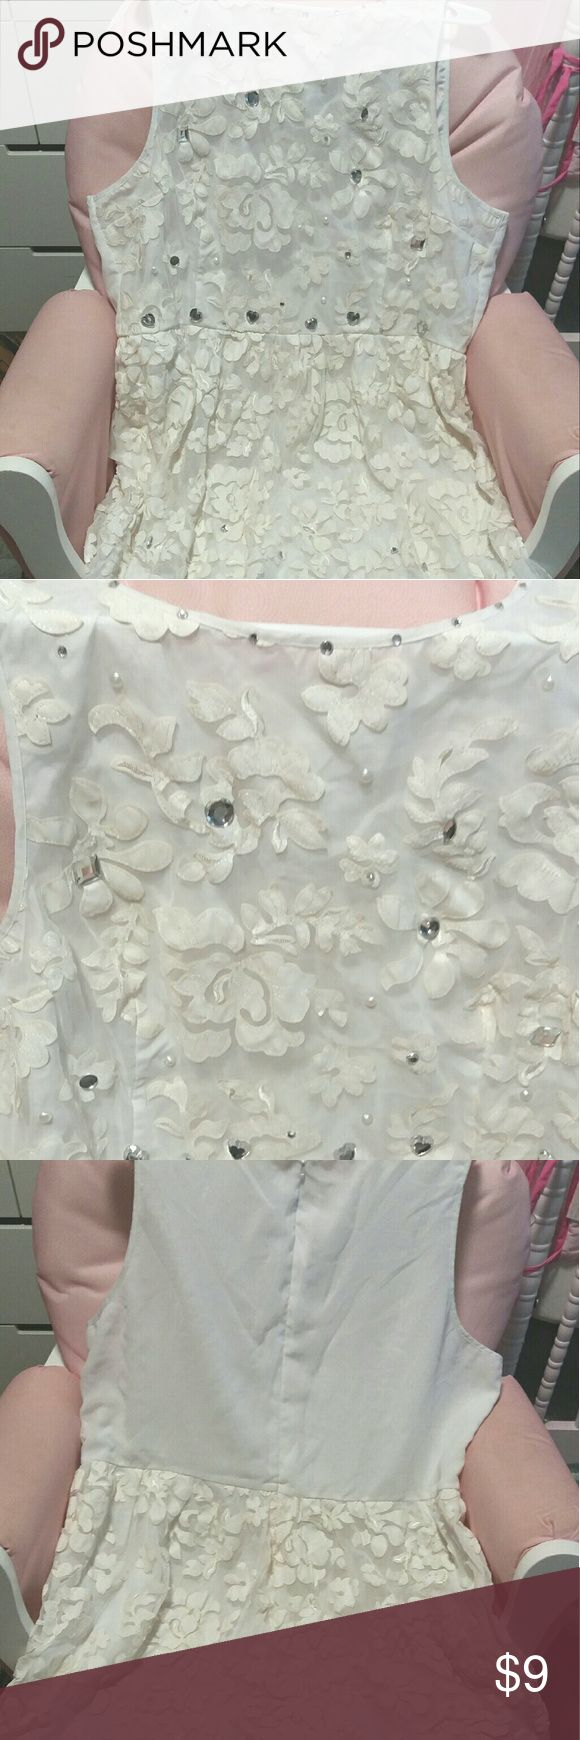 Light cream color dress Dress with flower lace design and different silver rhinestones thru out the dress..back unzips the back..has a small blue dot stain on back seen in 4th picture Dresses